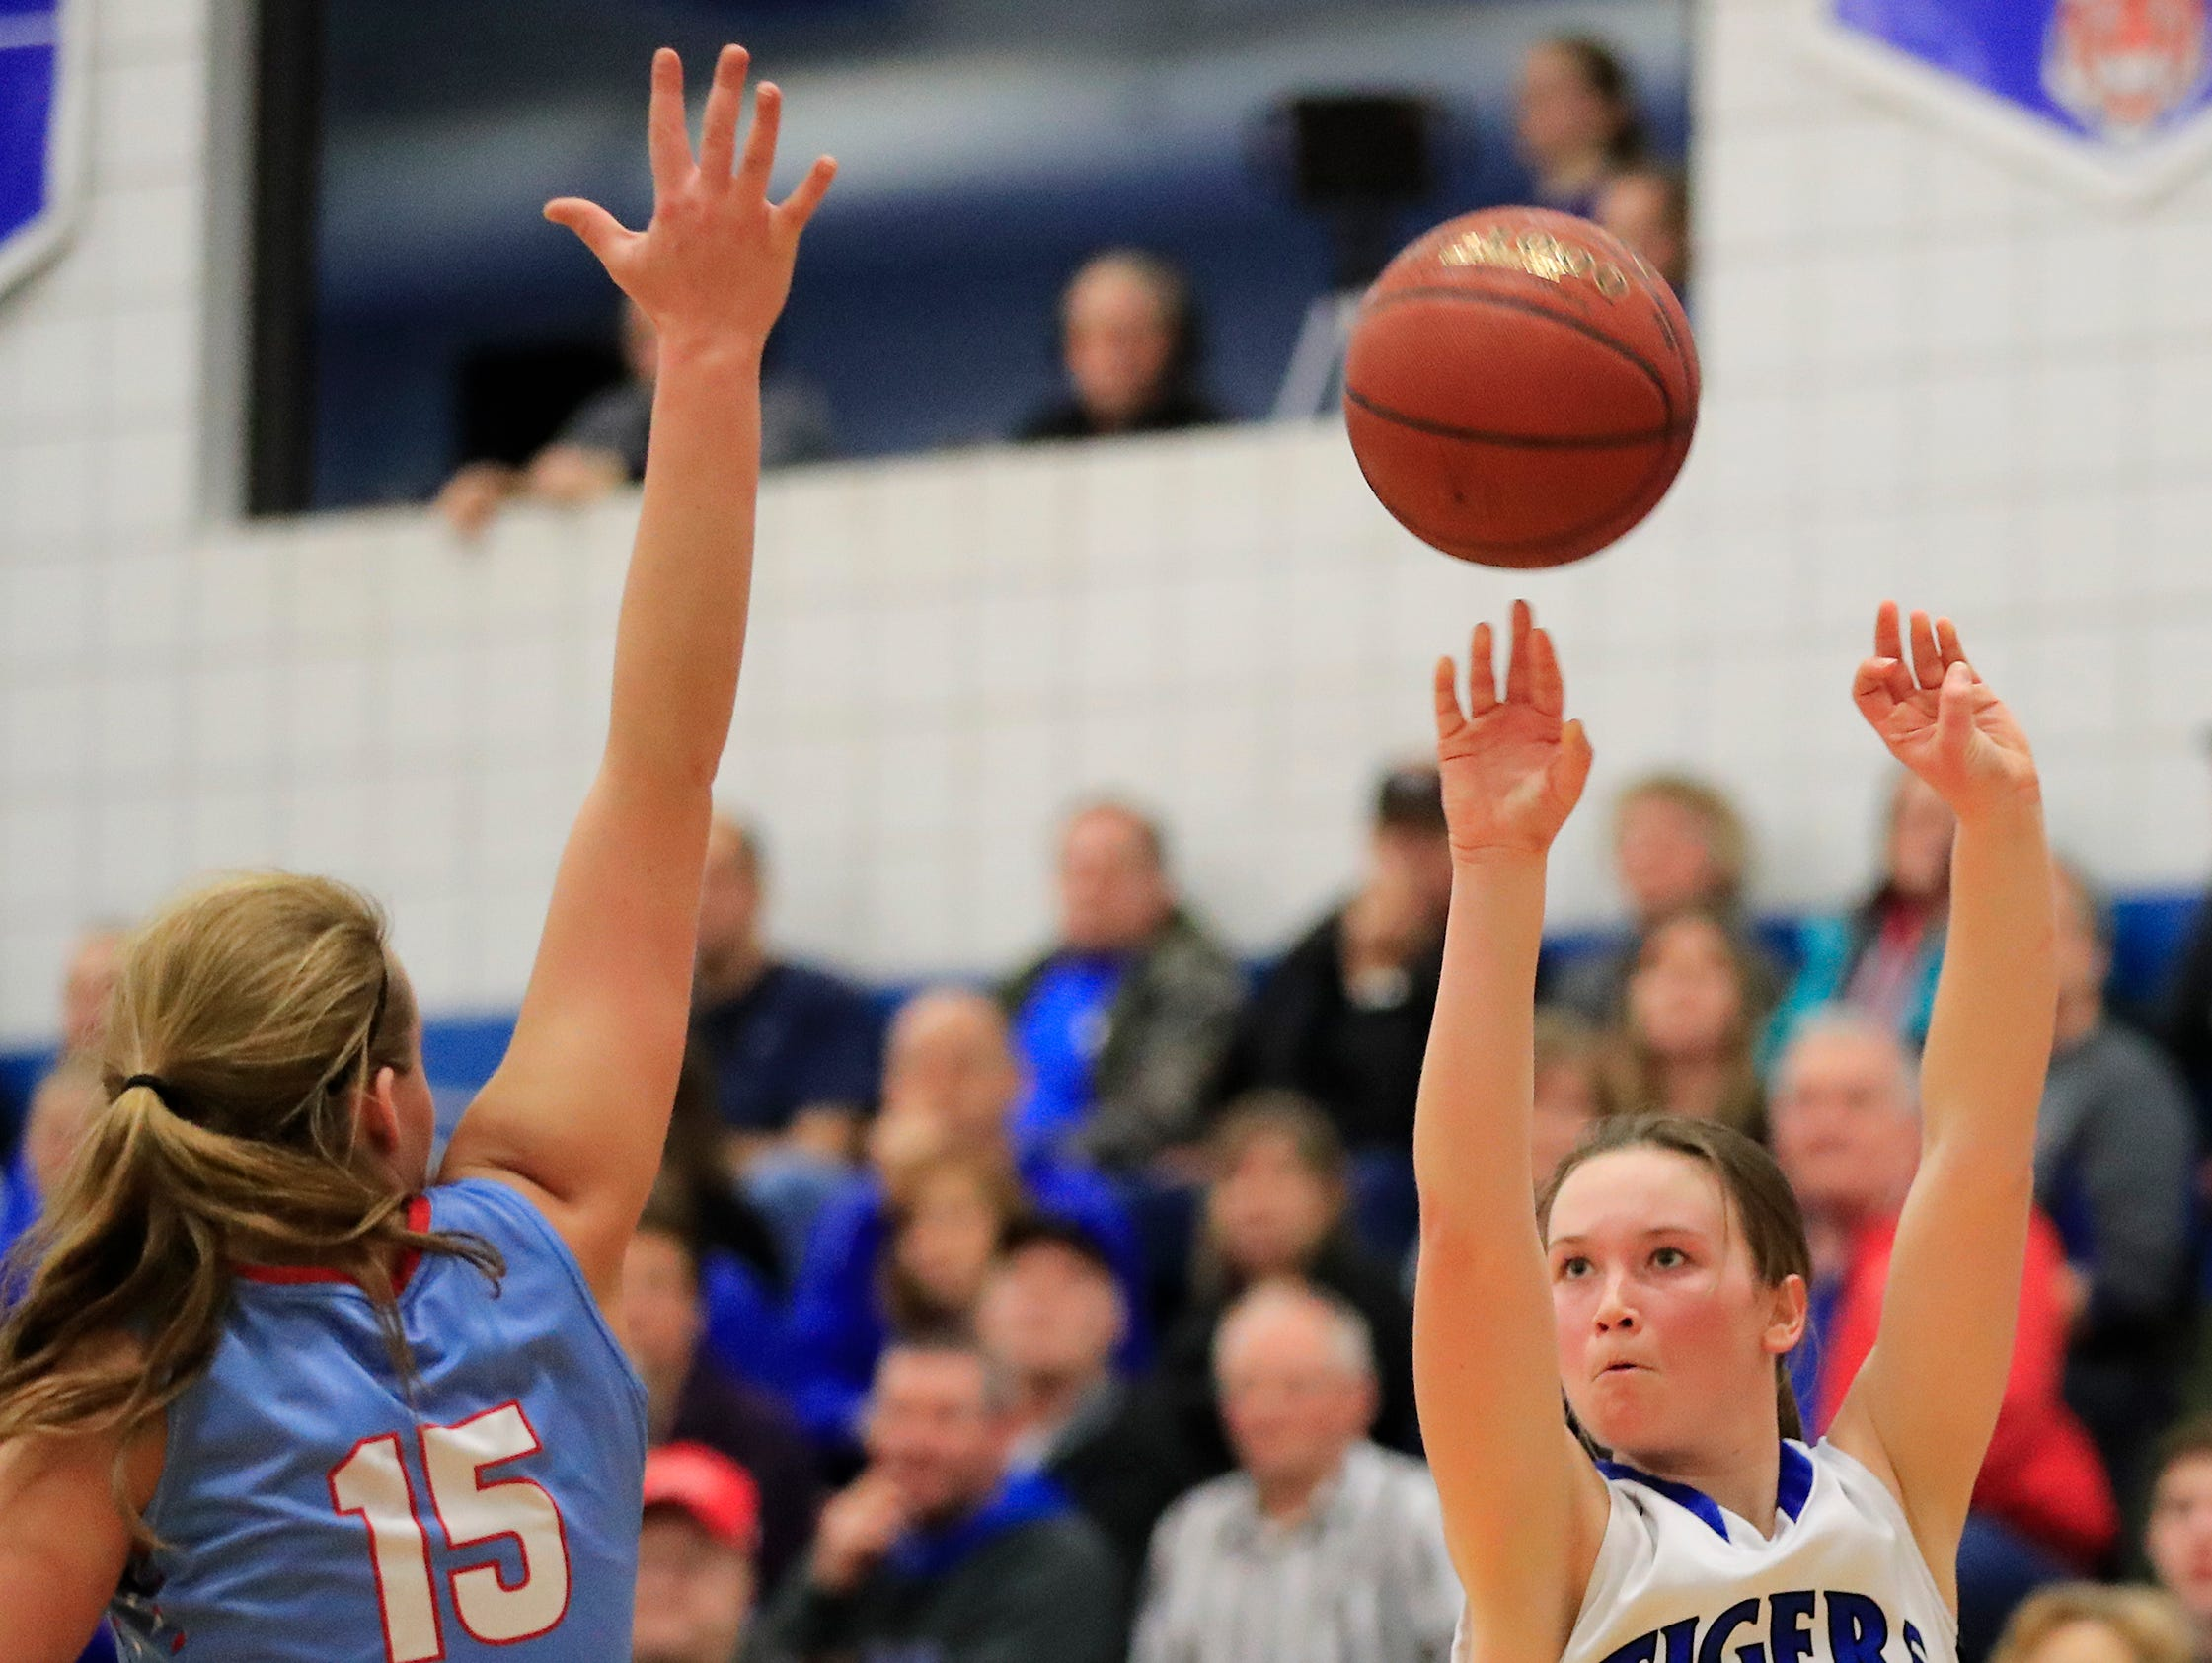 Wrightstown freshman Bridget Froehlke (1) shoots a 3-pointer against Southern Door's Megan Pavlik (15) in a WIAA Division 3 regional final girls basketball game on Feb. 27. Froehlke leads the Tigers with 44 made 3-pointers this season.